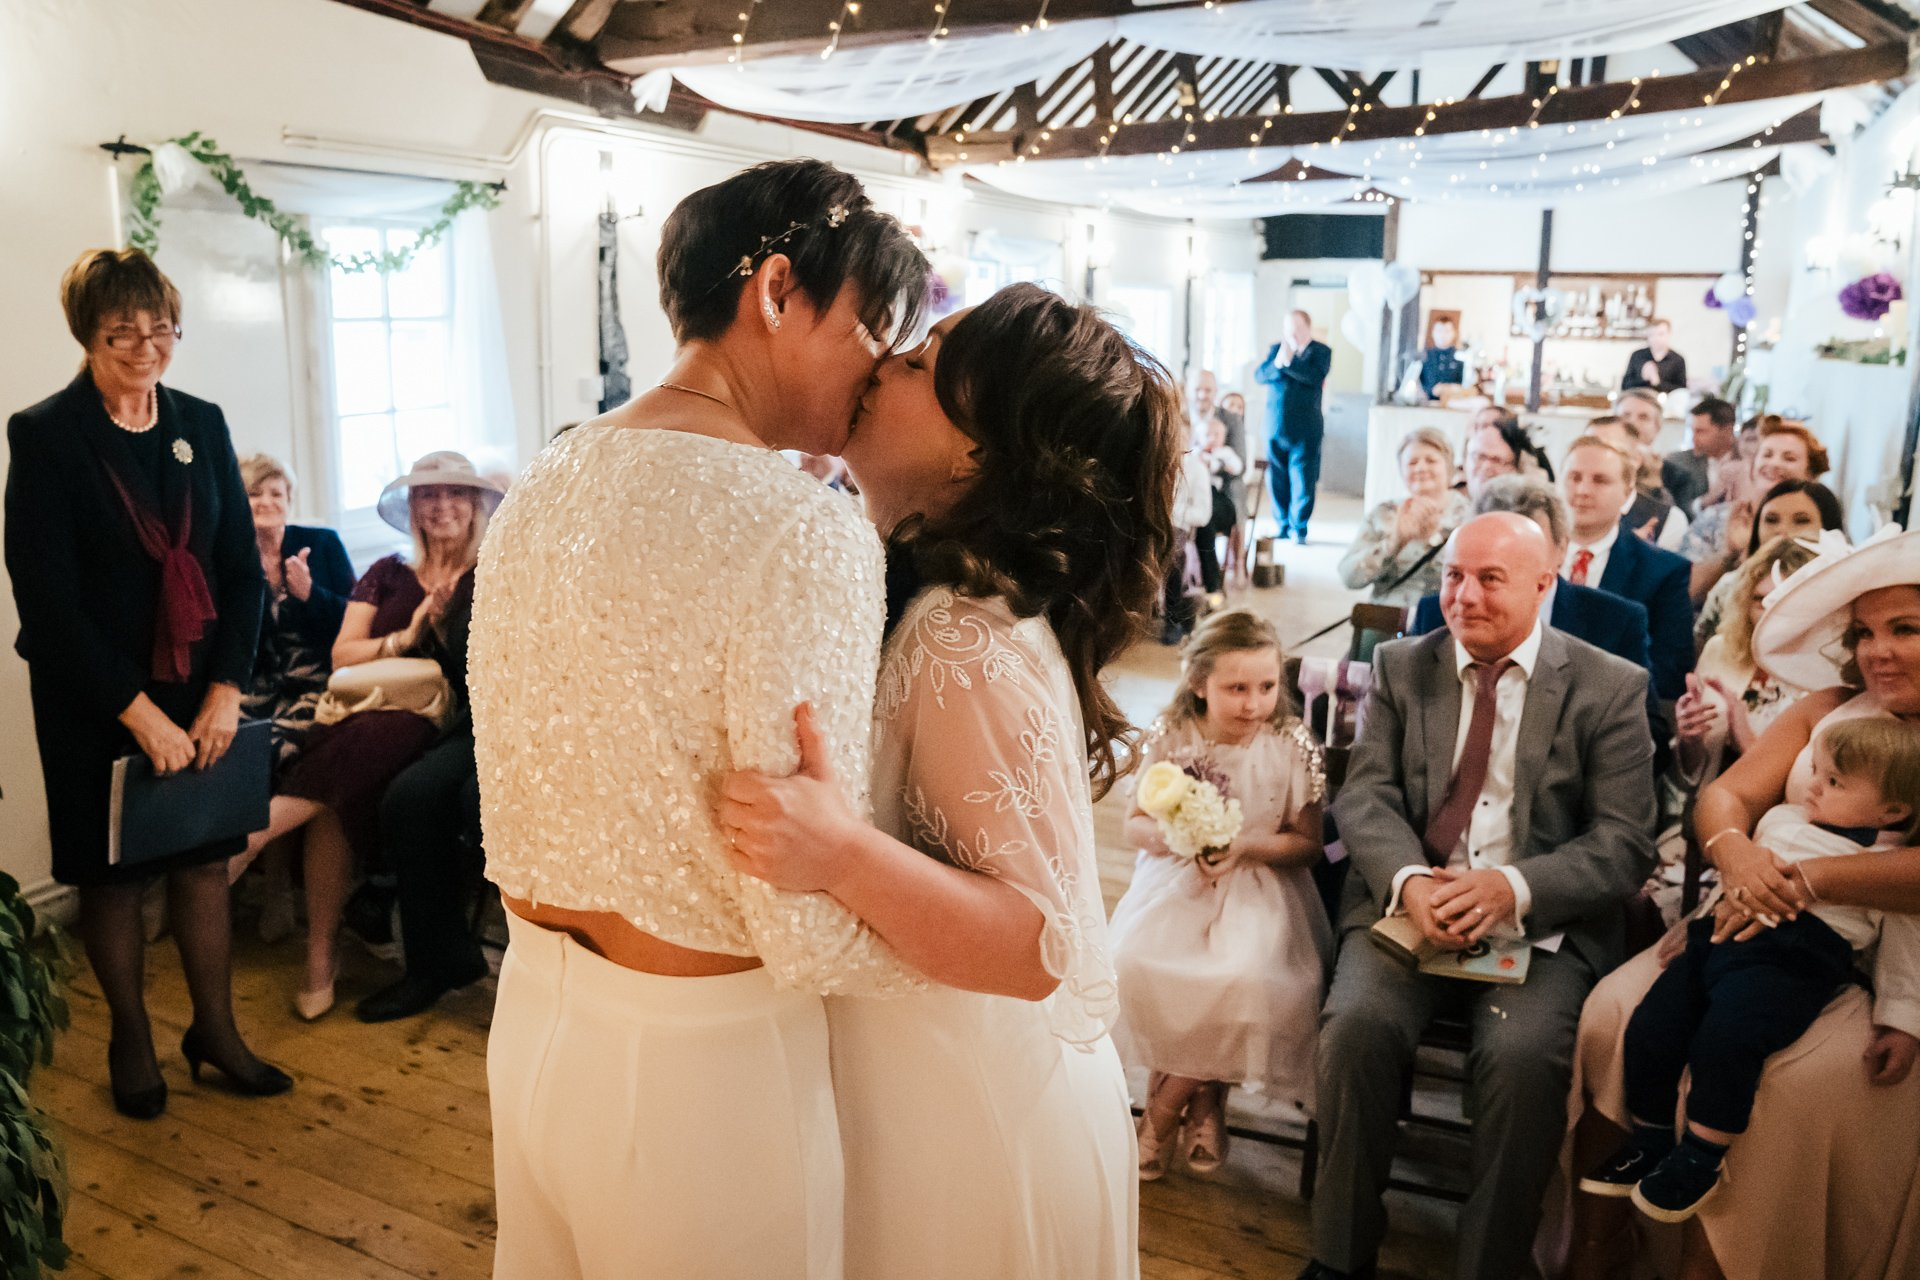 First kiss during the ceremony of two brides at The Bull Hotel, Kent